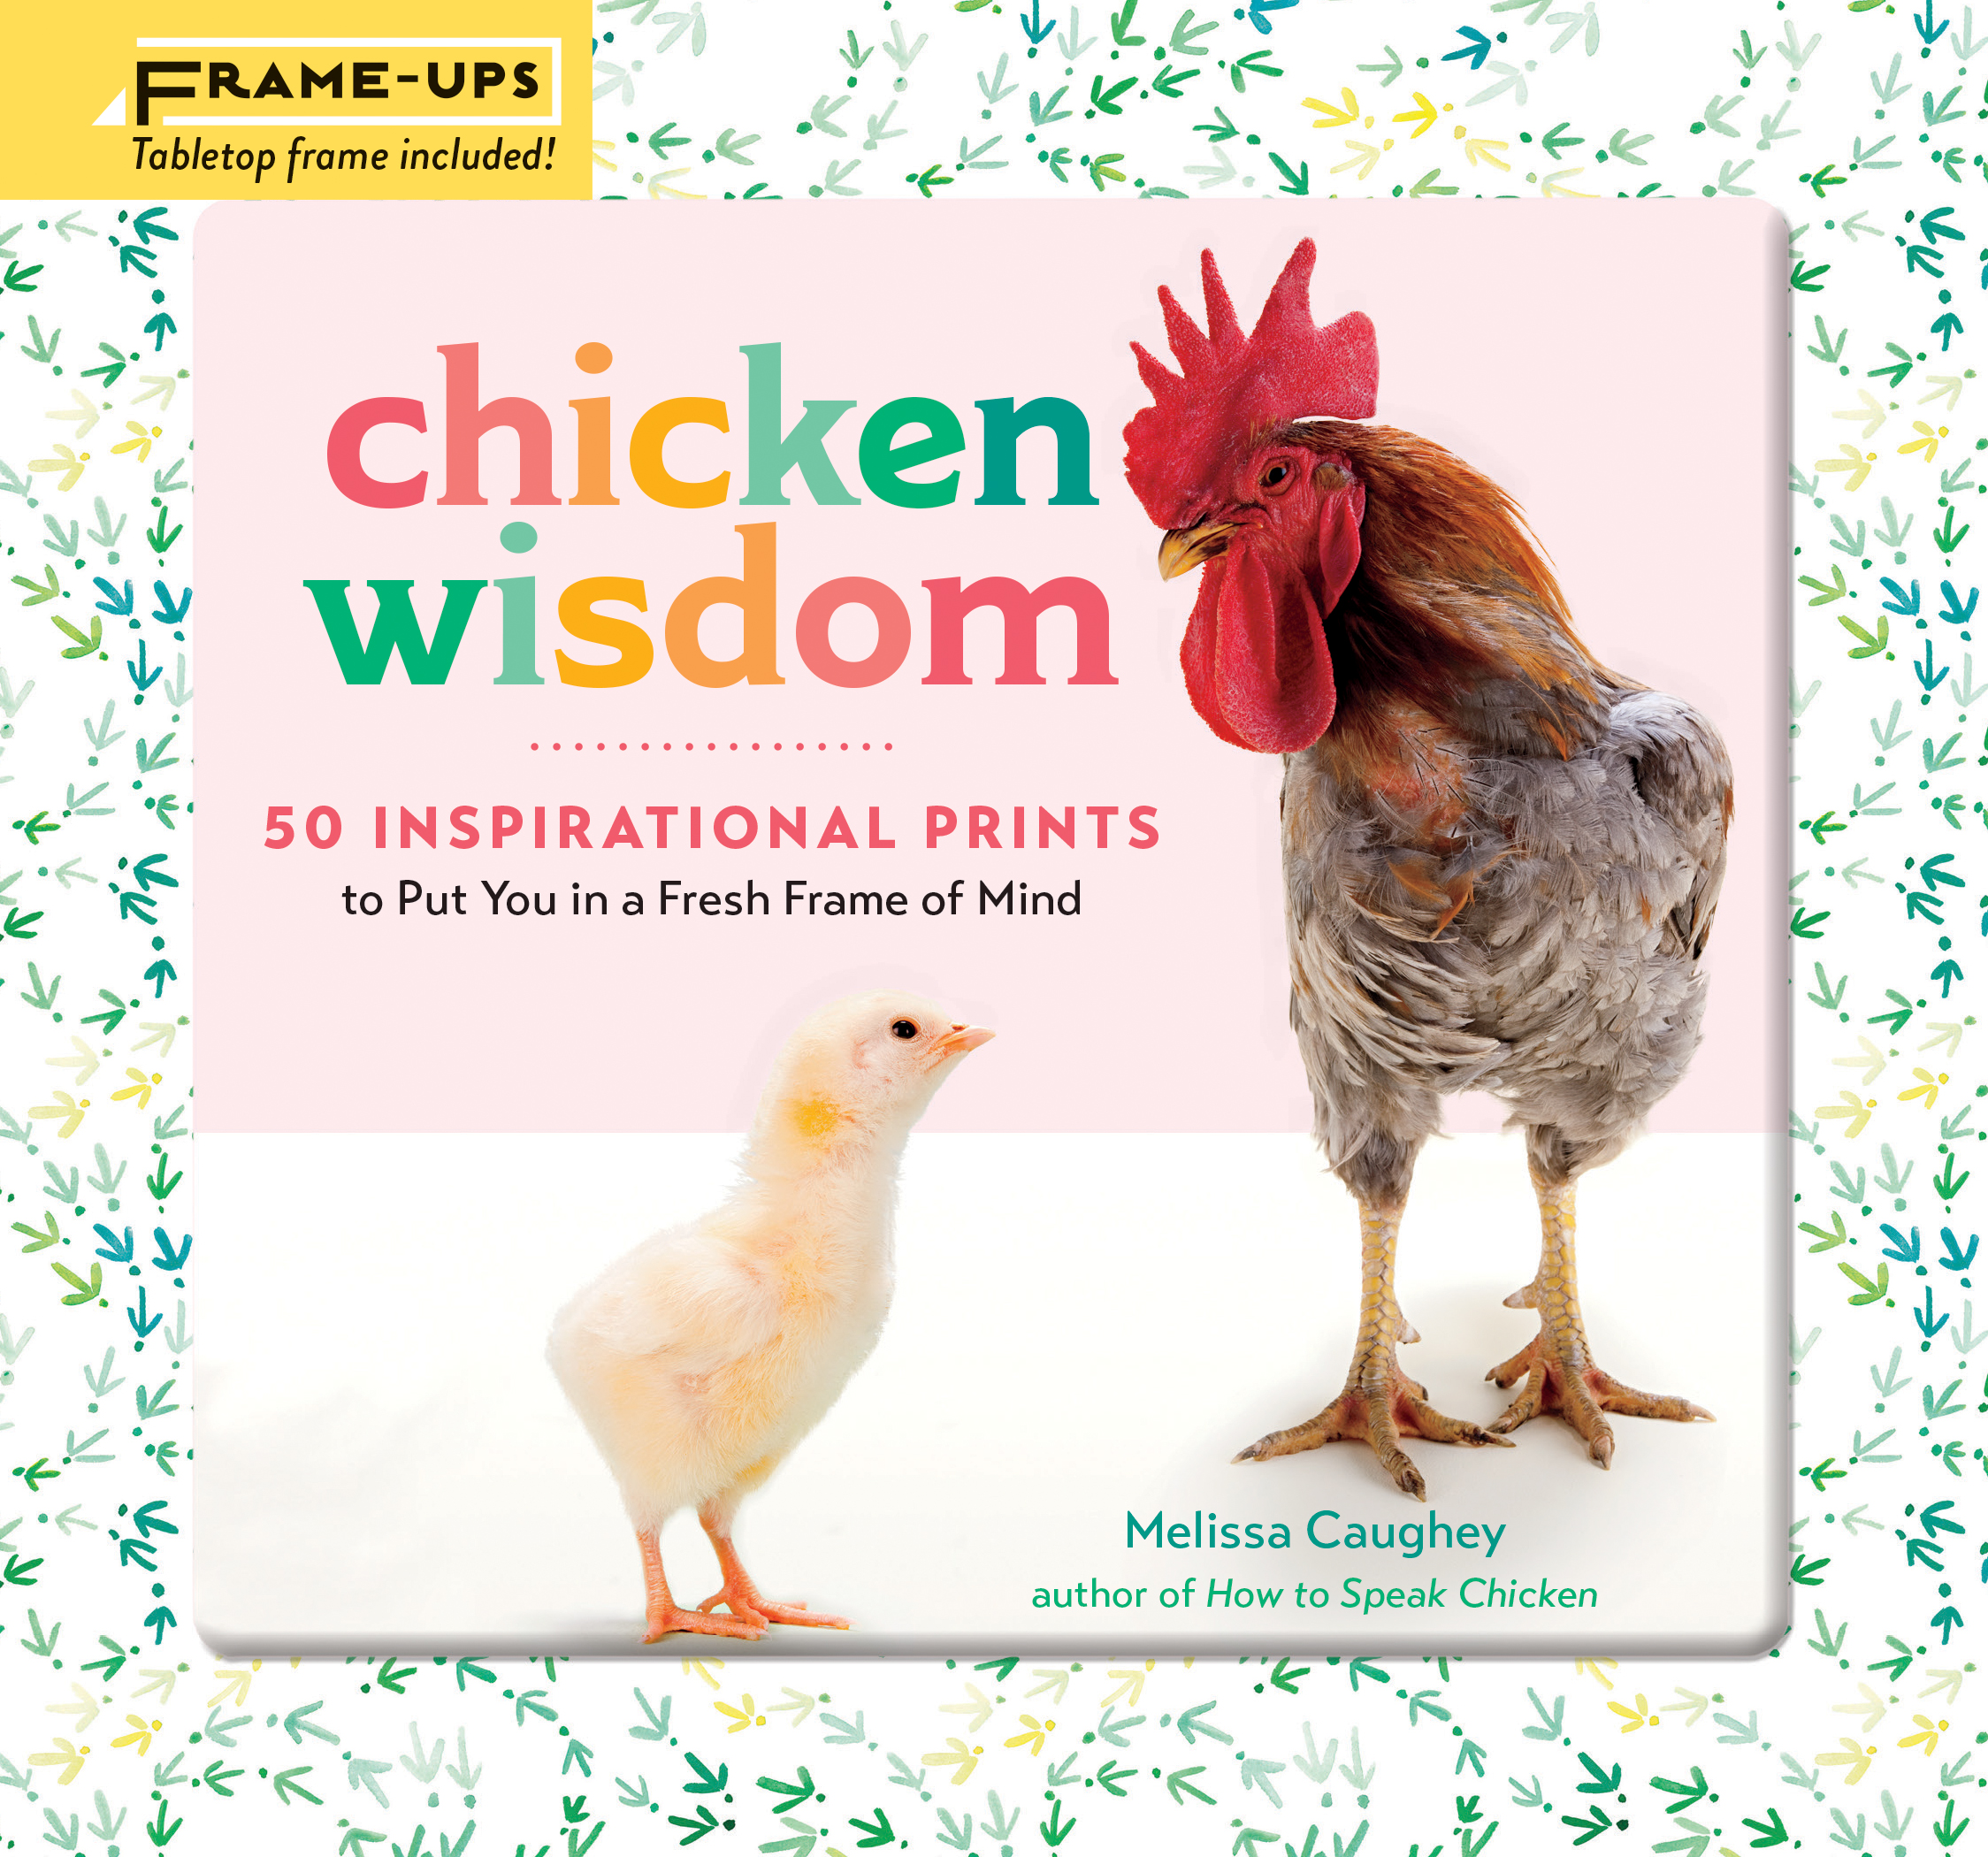 Chicken Wisdom Frame-Ups 50 Inspirational Prints to Put You in a Fresh Frame of Mind - Melissa Caughey